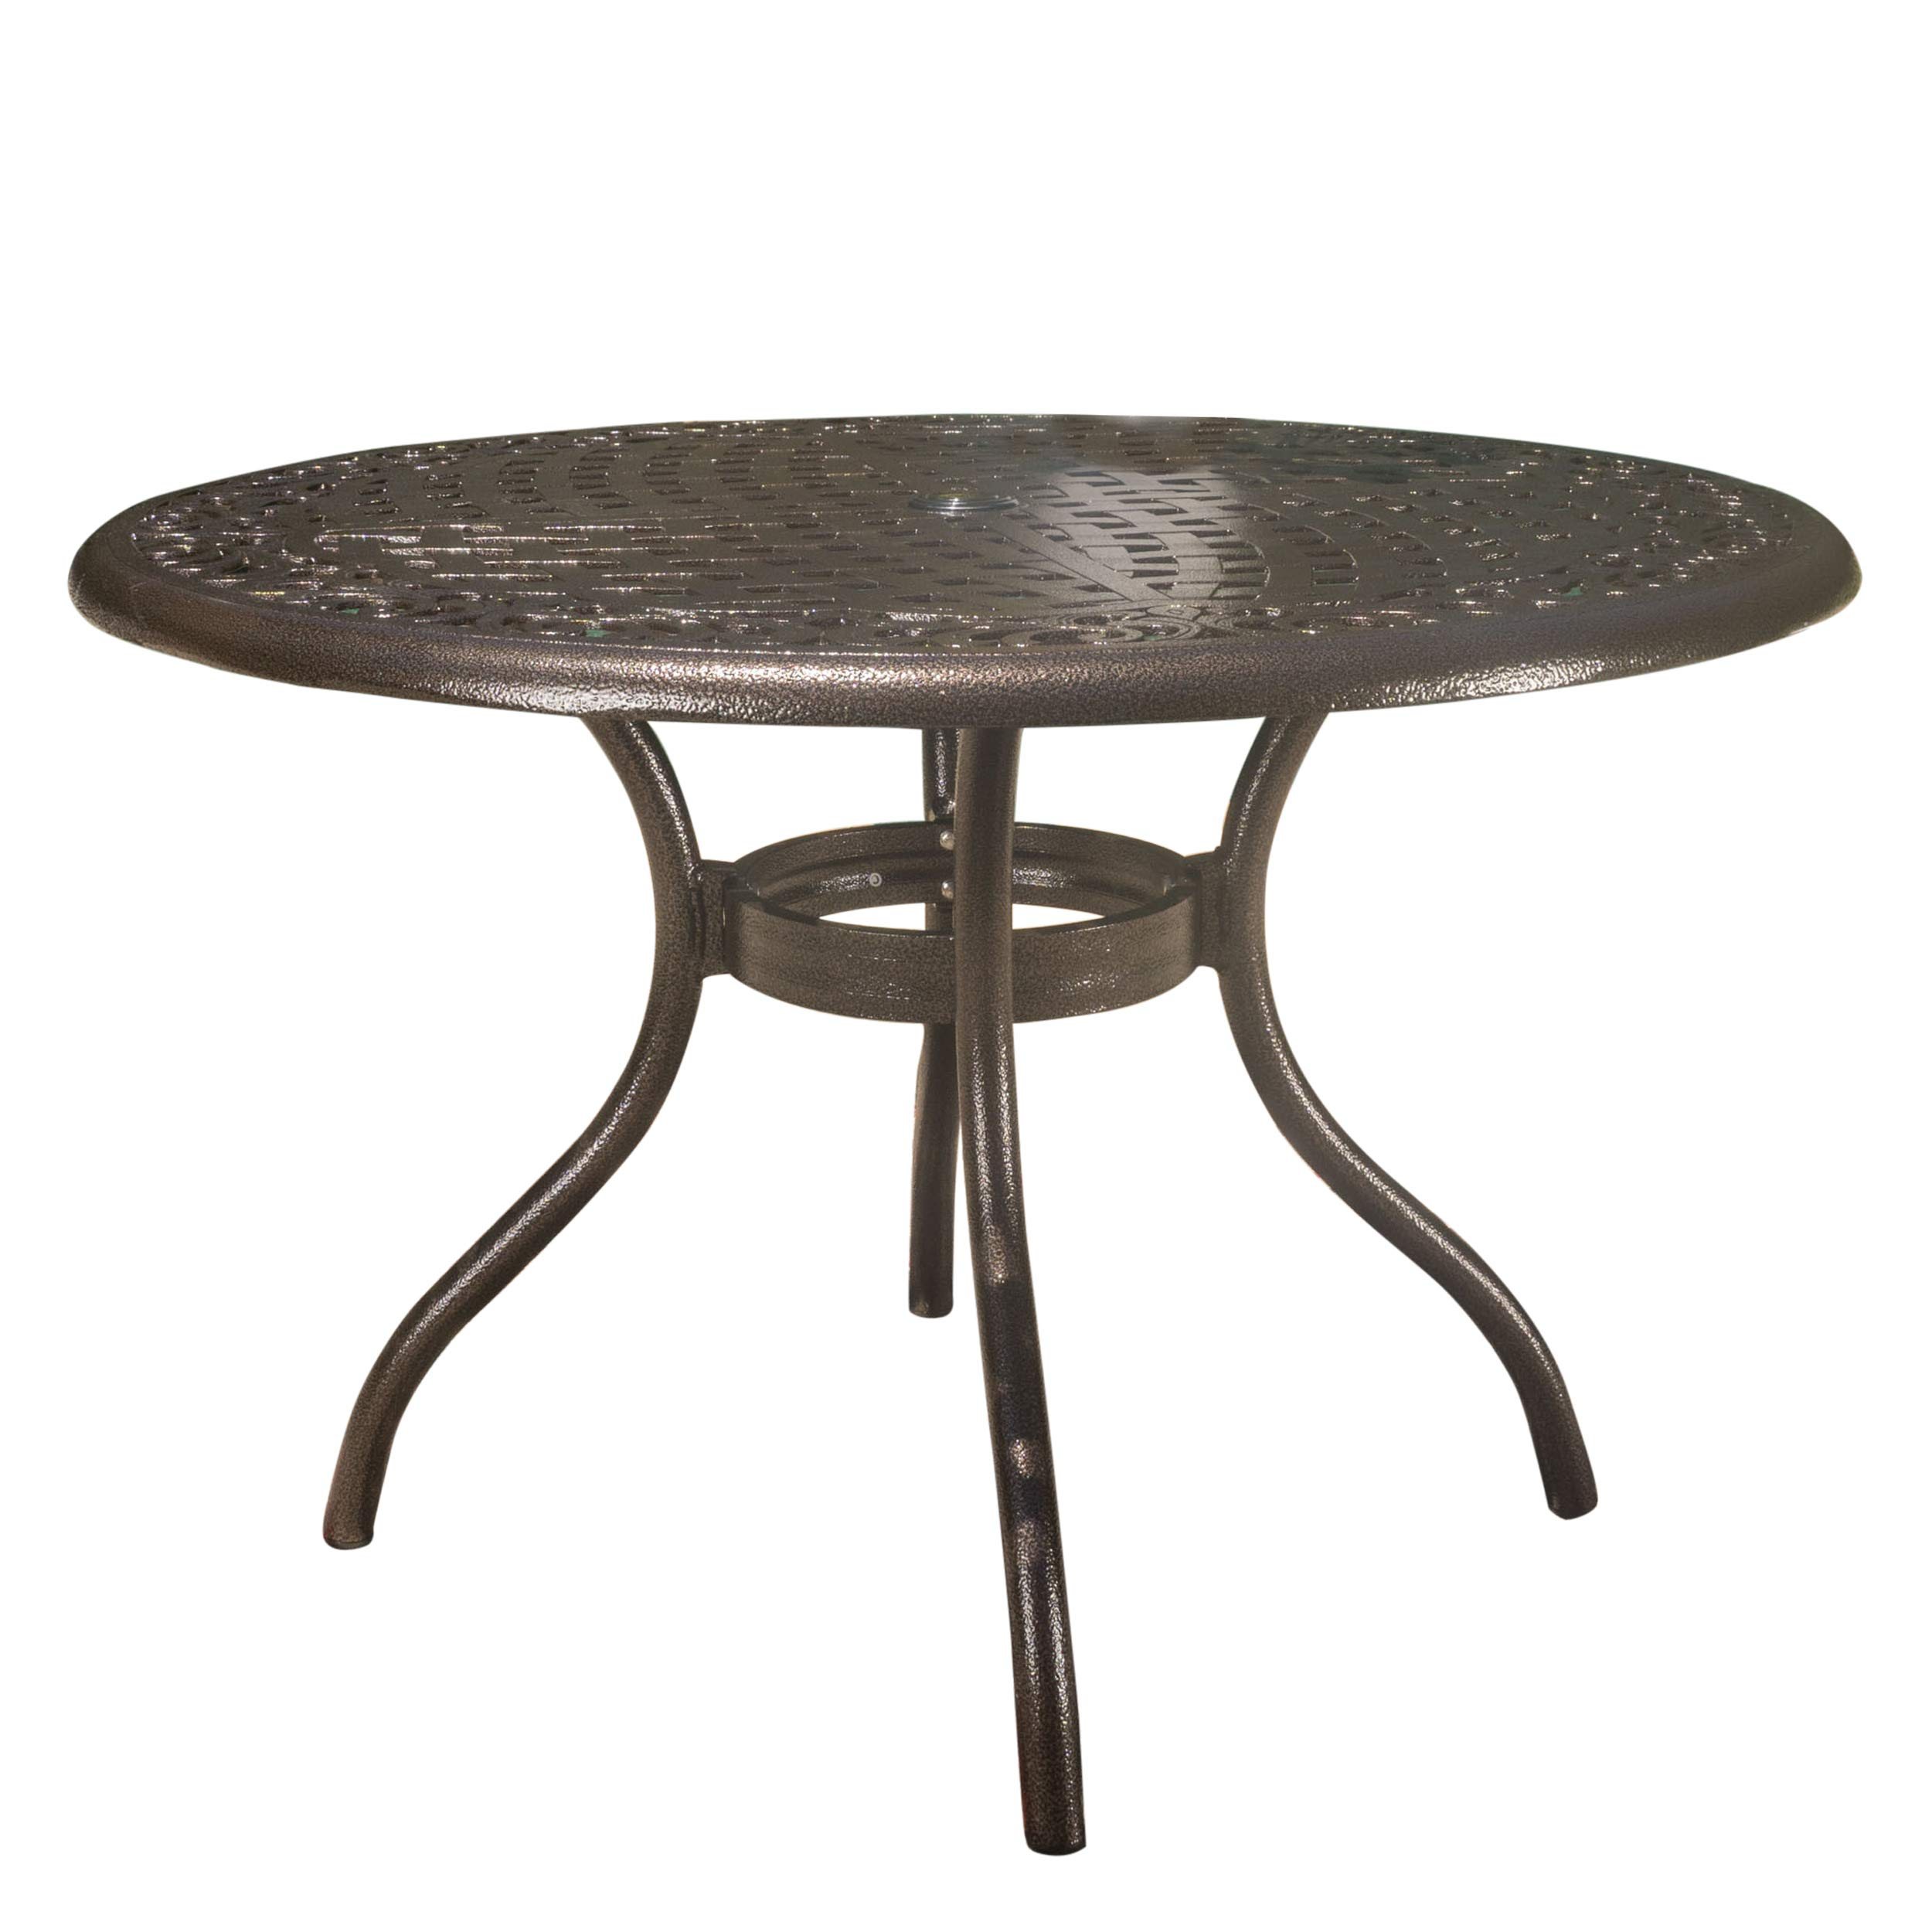 Christopher Knight Home GDF Studio Kiawah | Round Cast Aluminum Outdoor Patio Table | Perfect for Dining | in Hammered Bronze